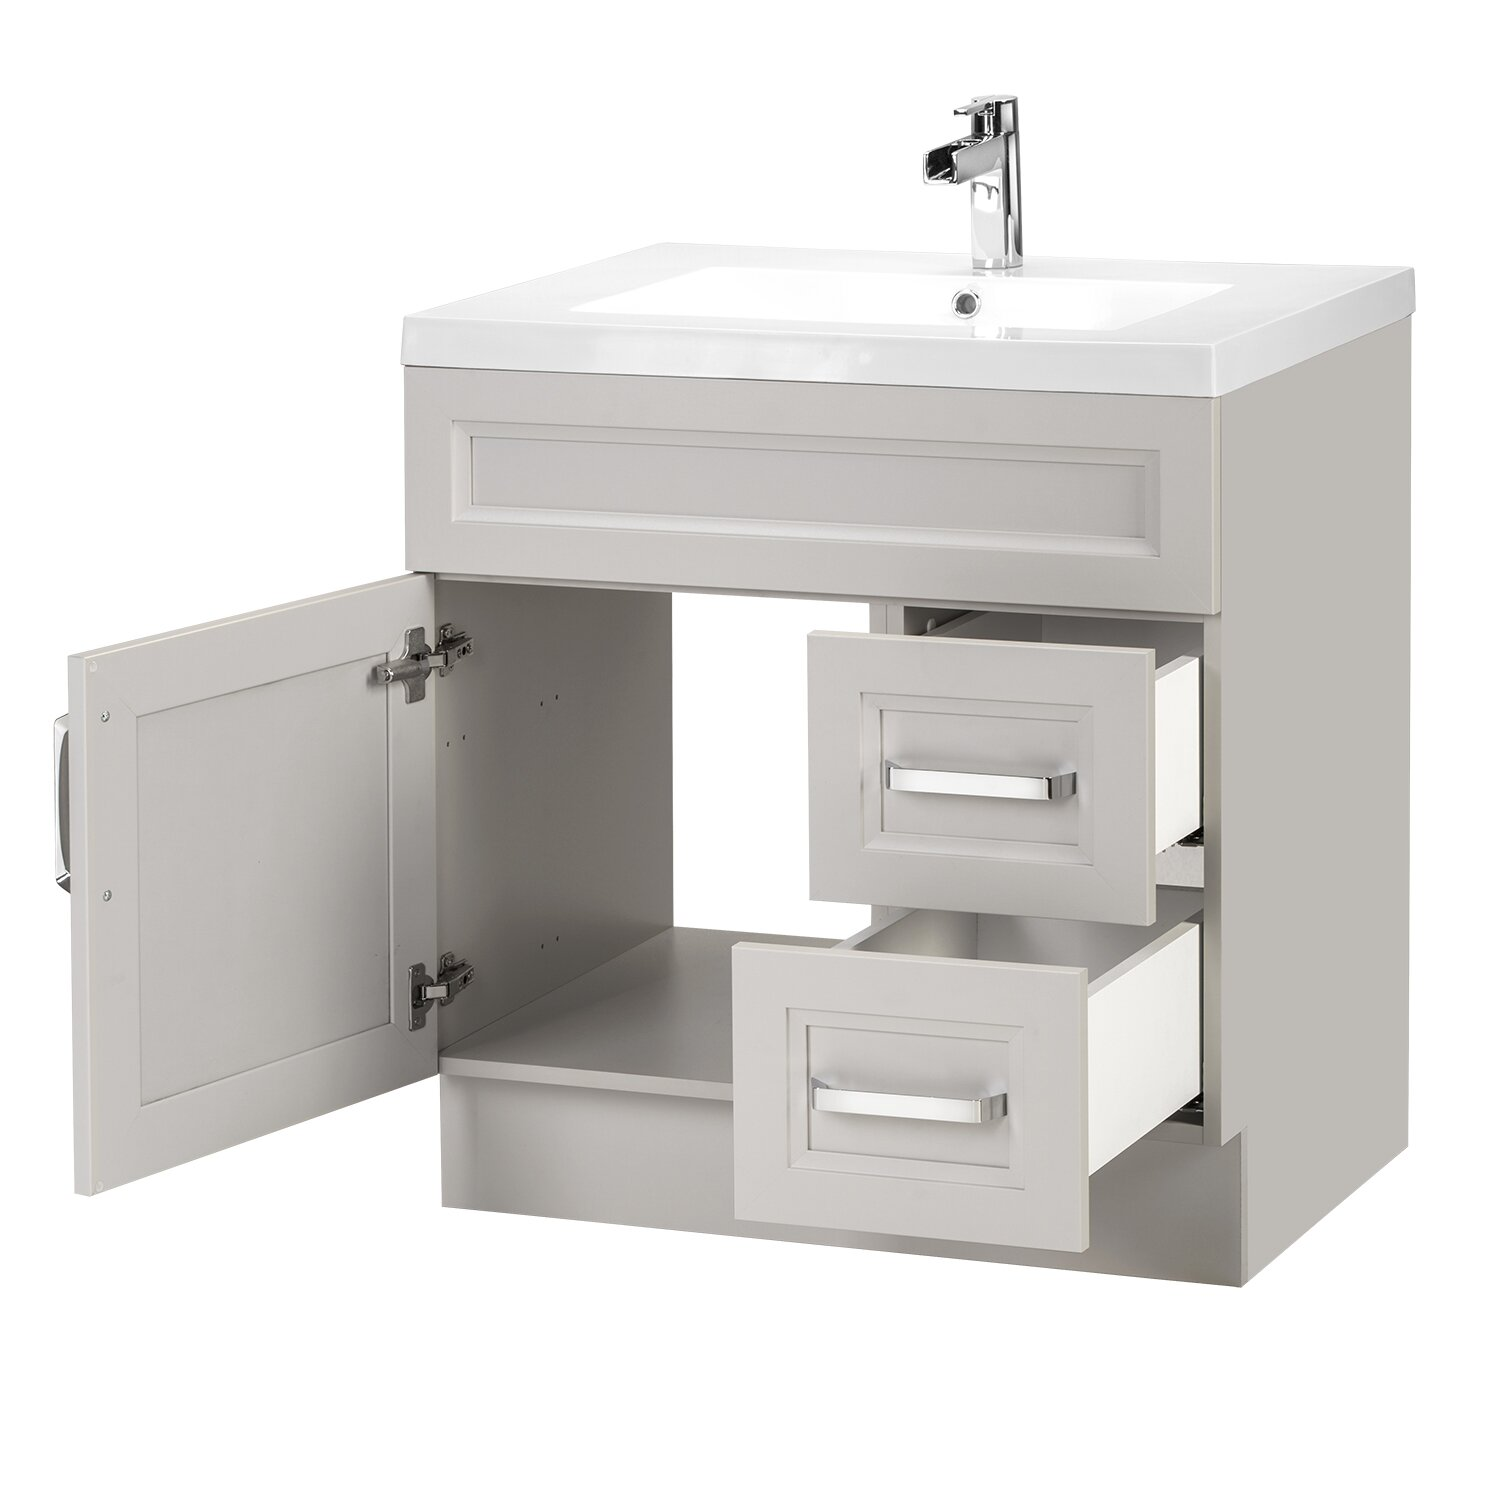 of and vanities collection youull mounted cutler home floating bath silhouette kitchen vanity design bathroom unique wall ideas